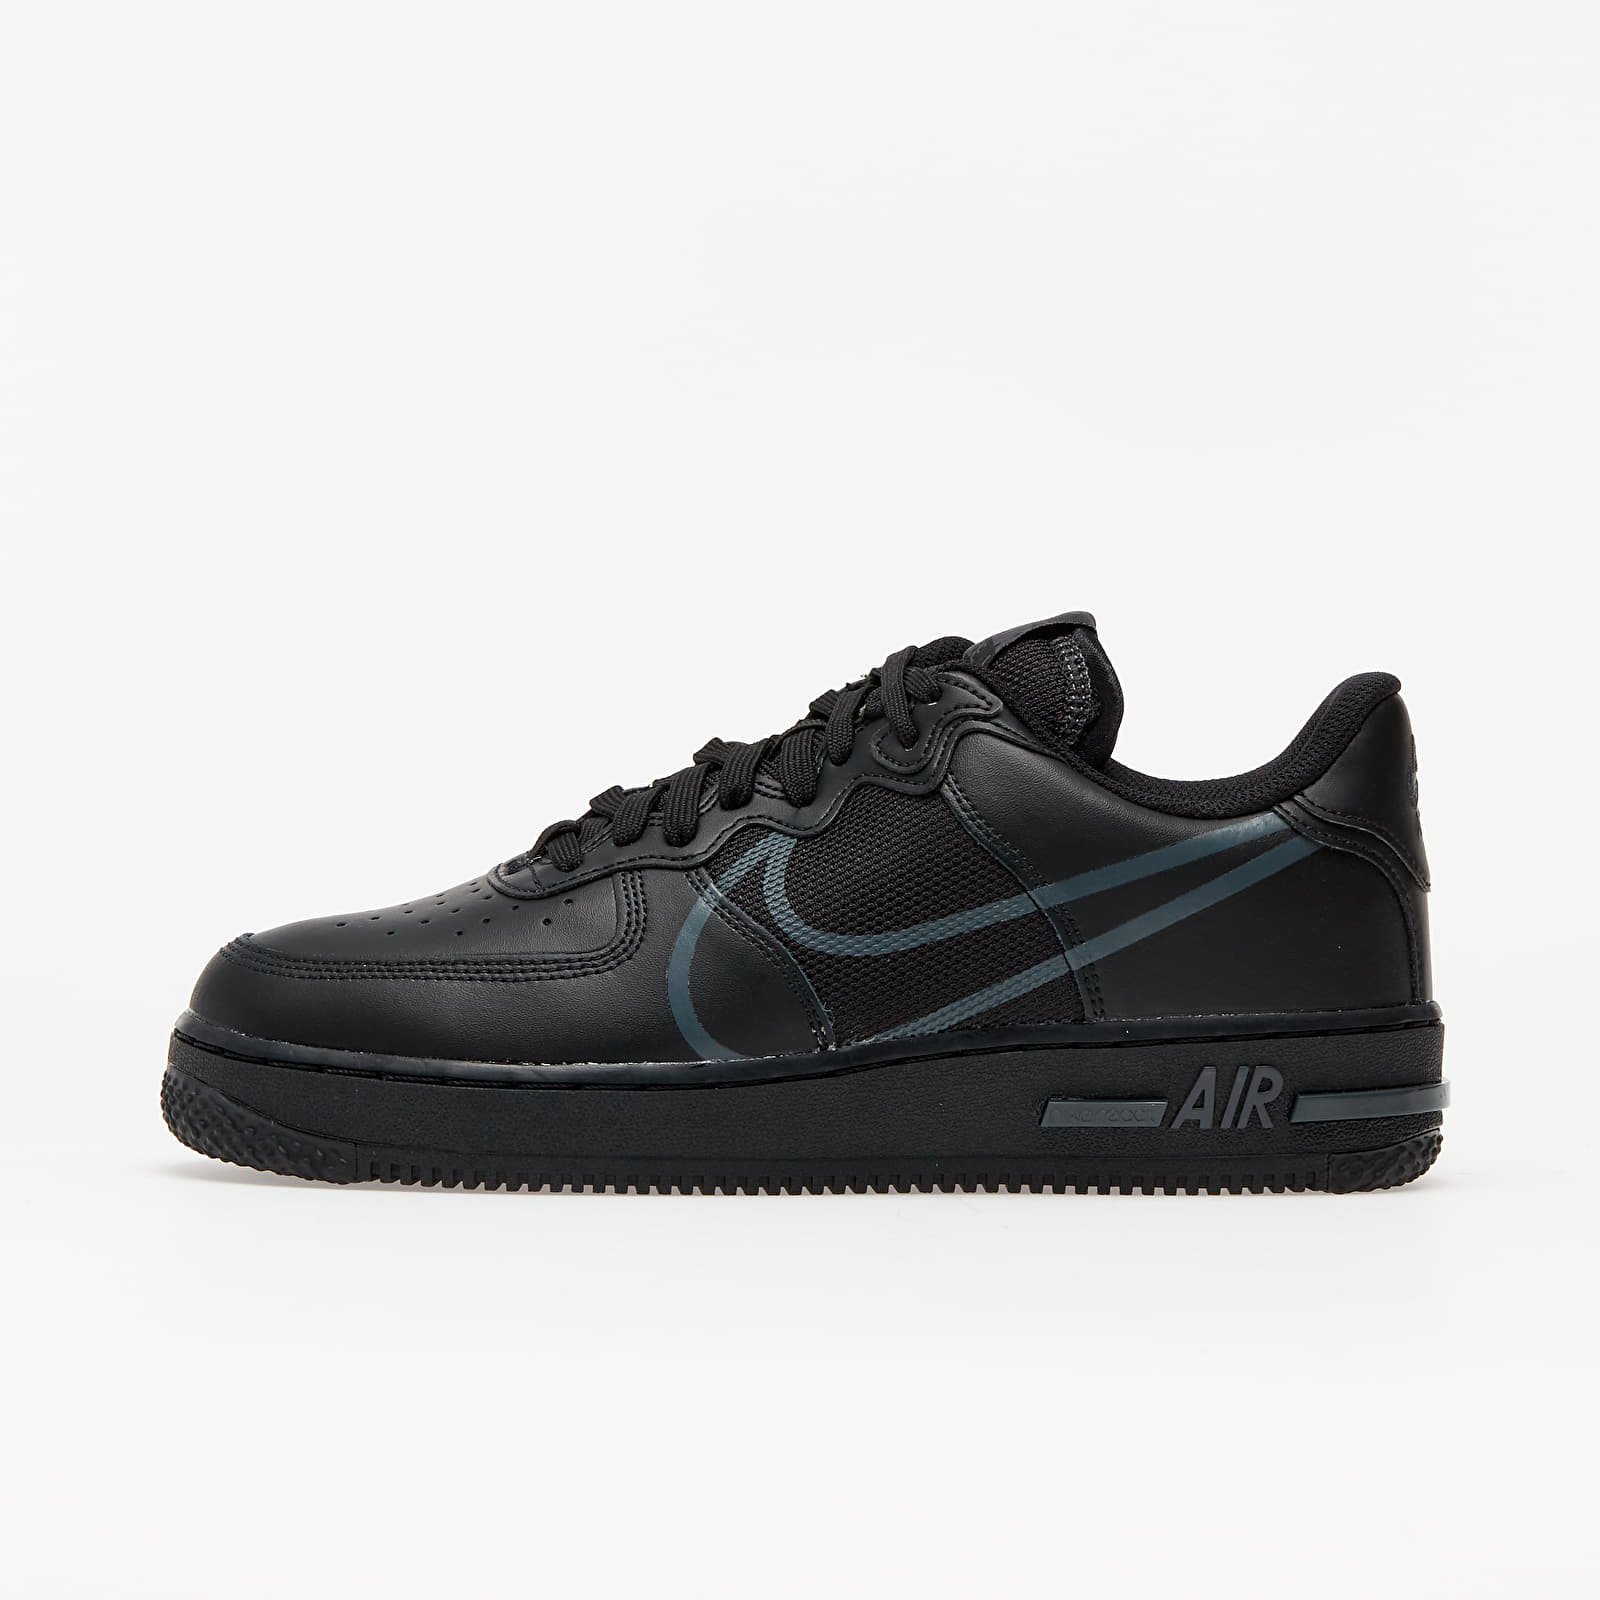 Zapatillas Hombre Nike Air Force 1 React Black/ Anthracite